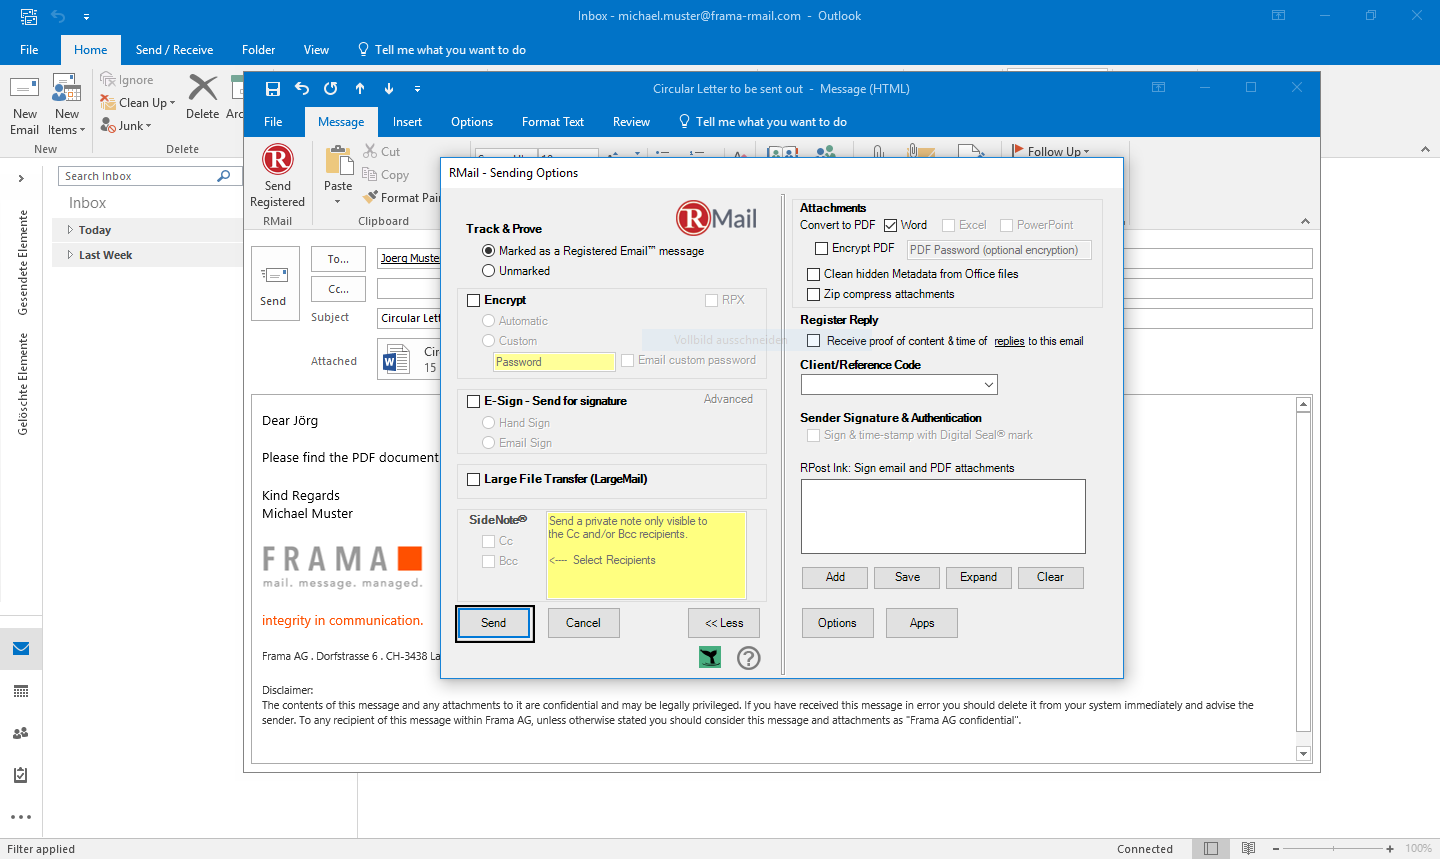 Convert attachments to PDF with Outlook - Step 4